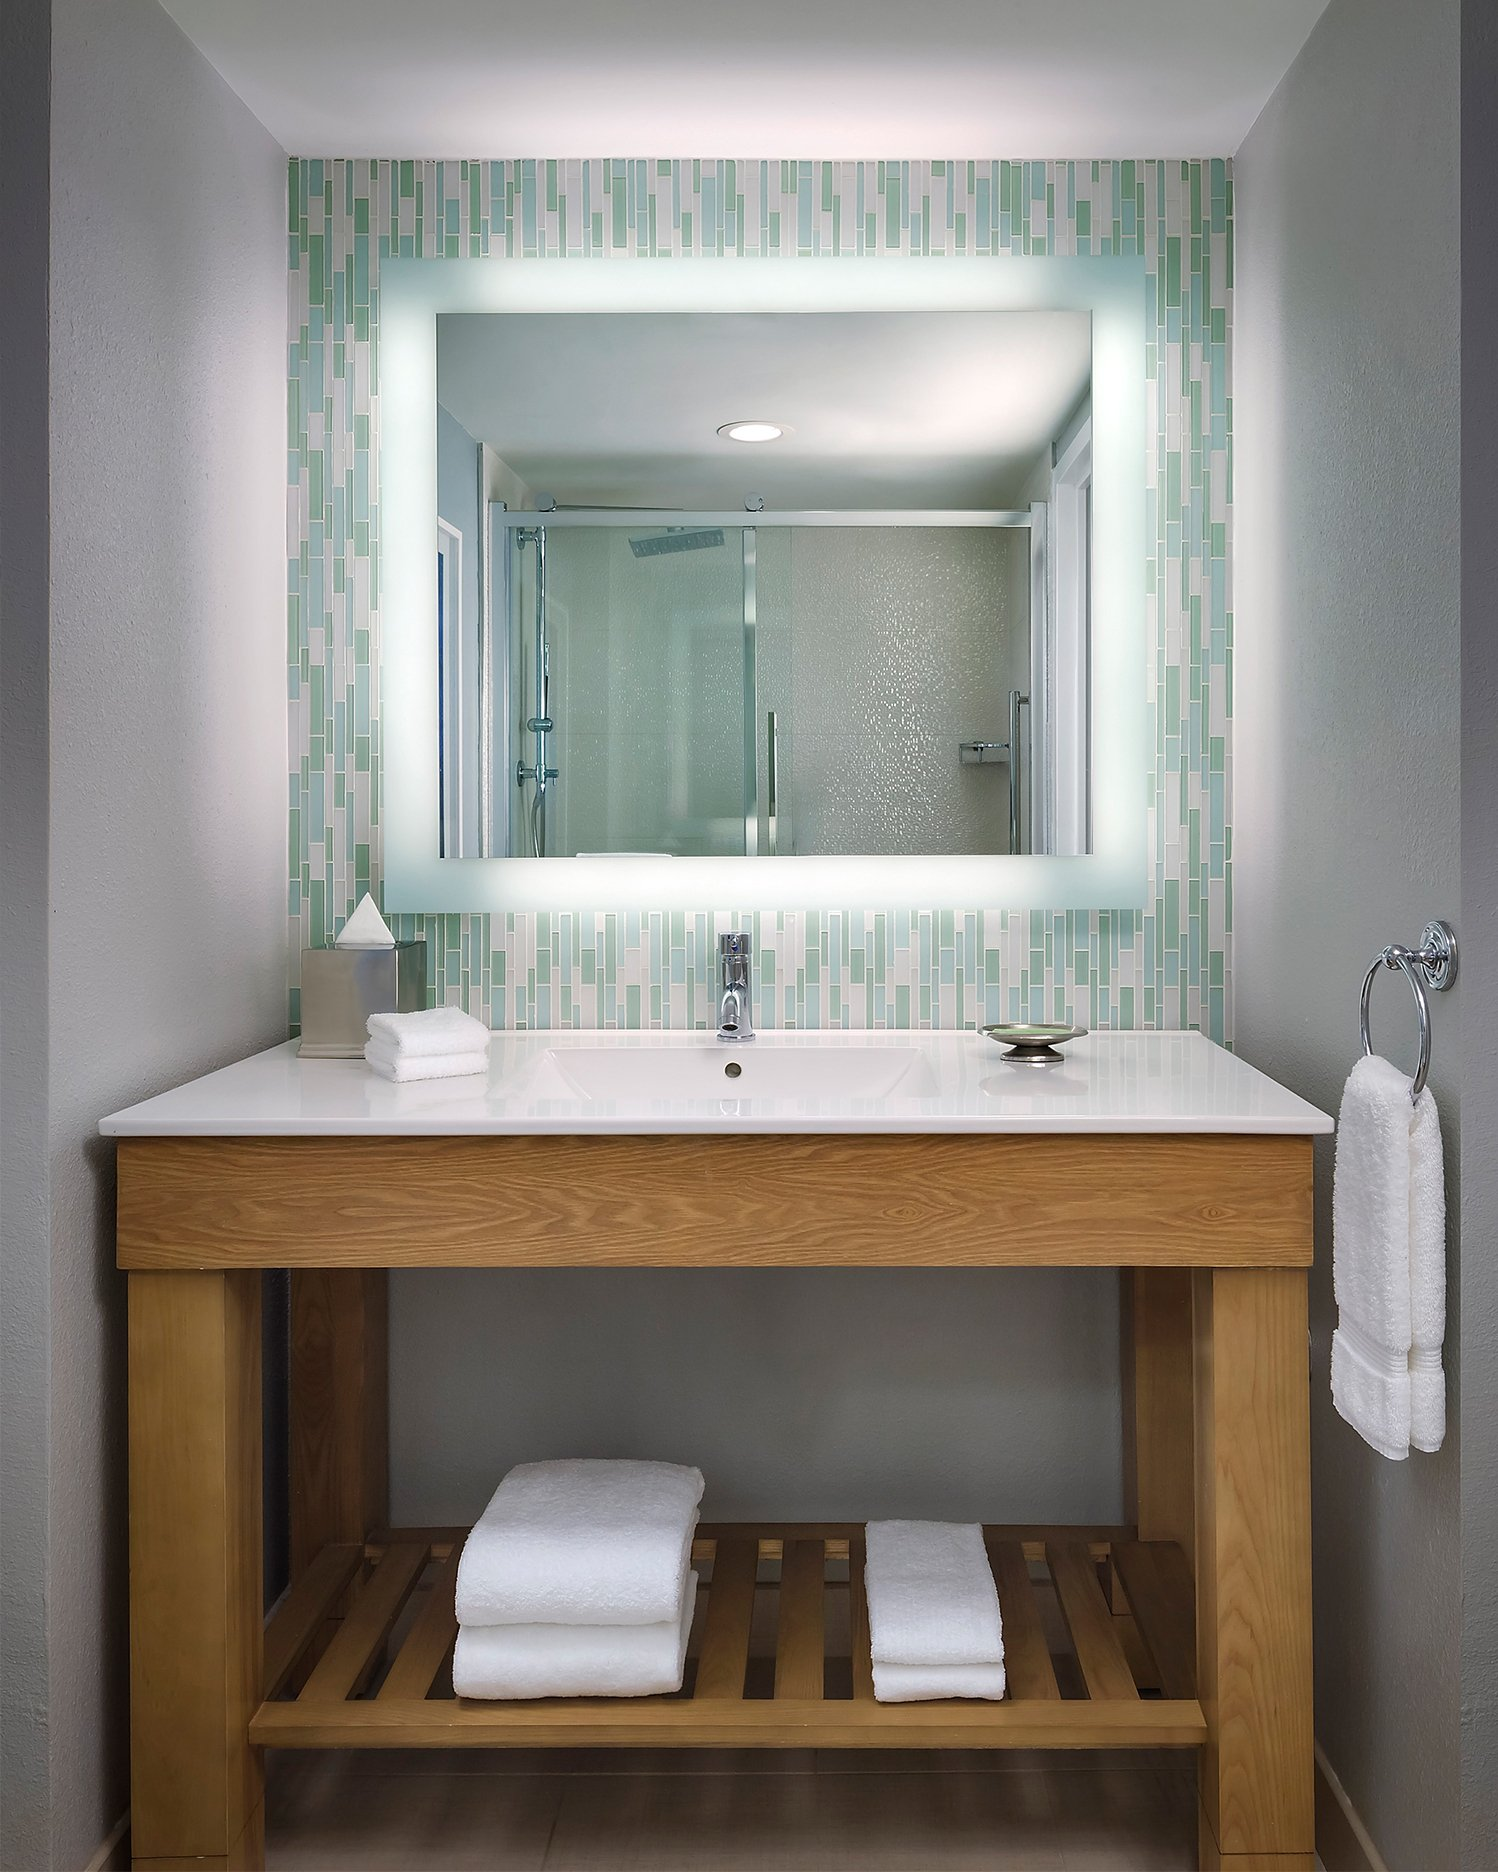 The new rooms use hues of white, blue and gray; and come with multi-functional furniture and new bathrooms with vanities with backlit mirrors on iridescent glass tiles.